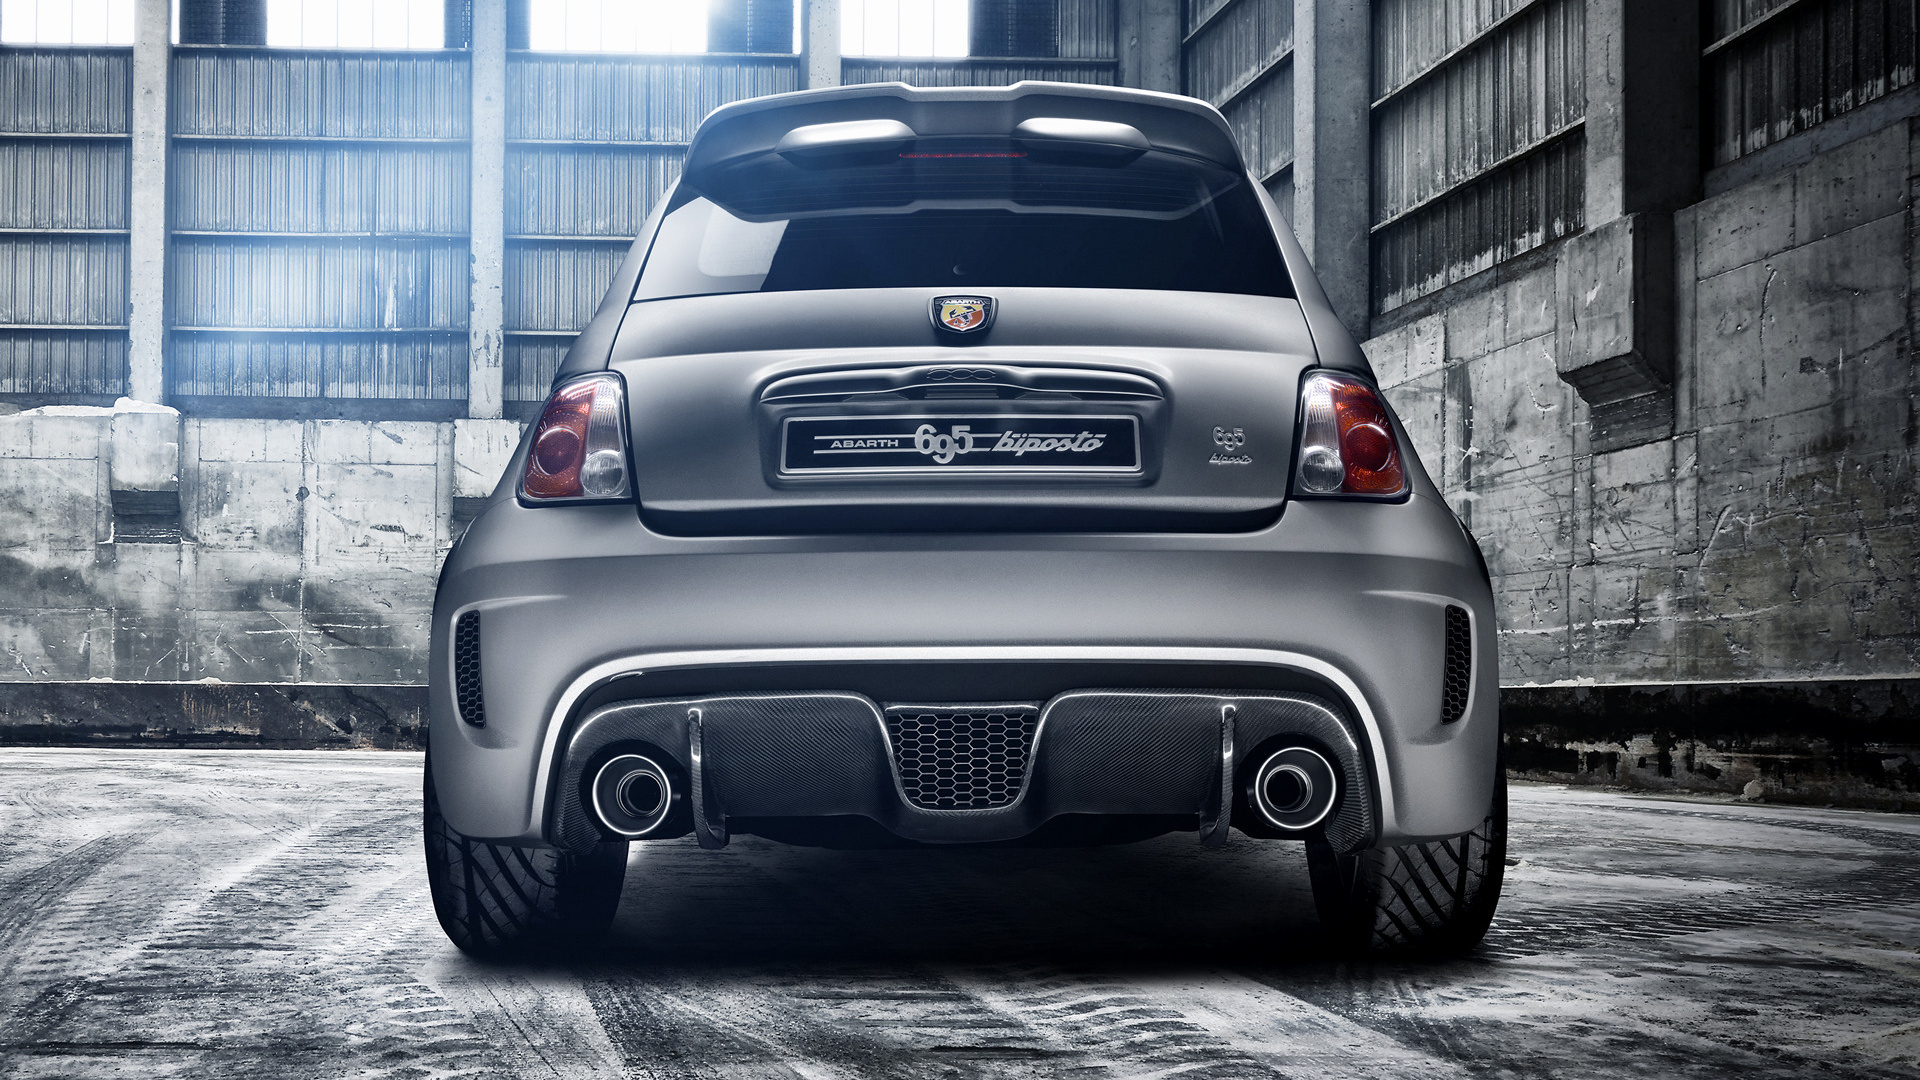 2014 Abarth 695 Biposto on subaru logo